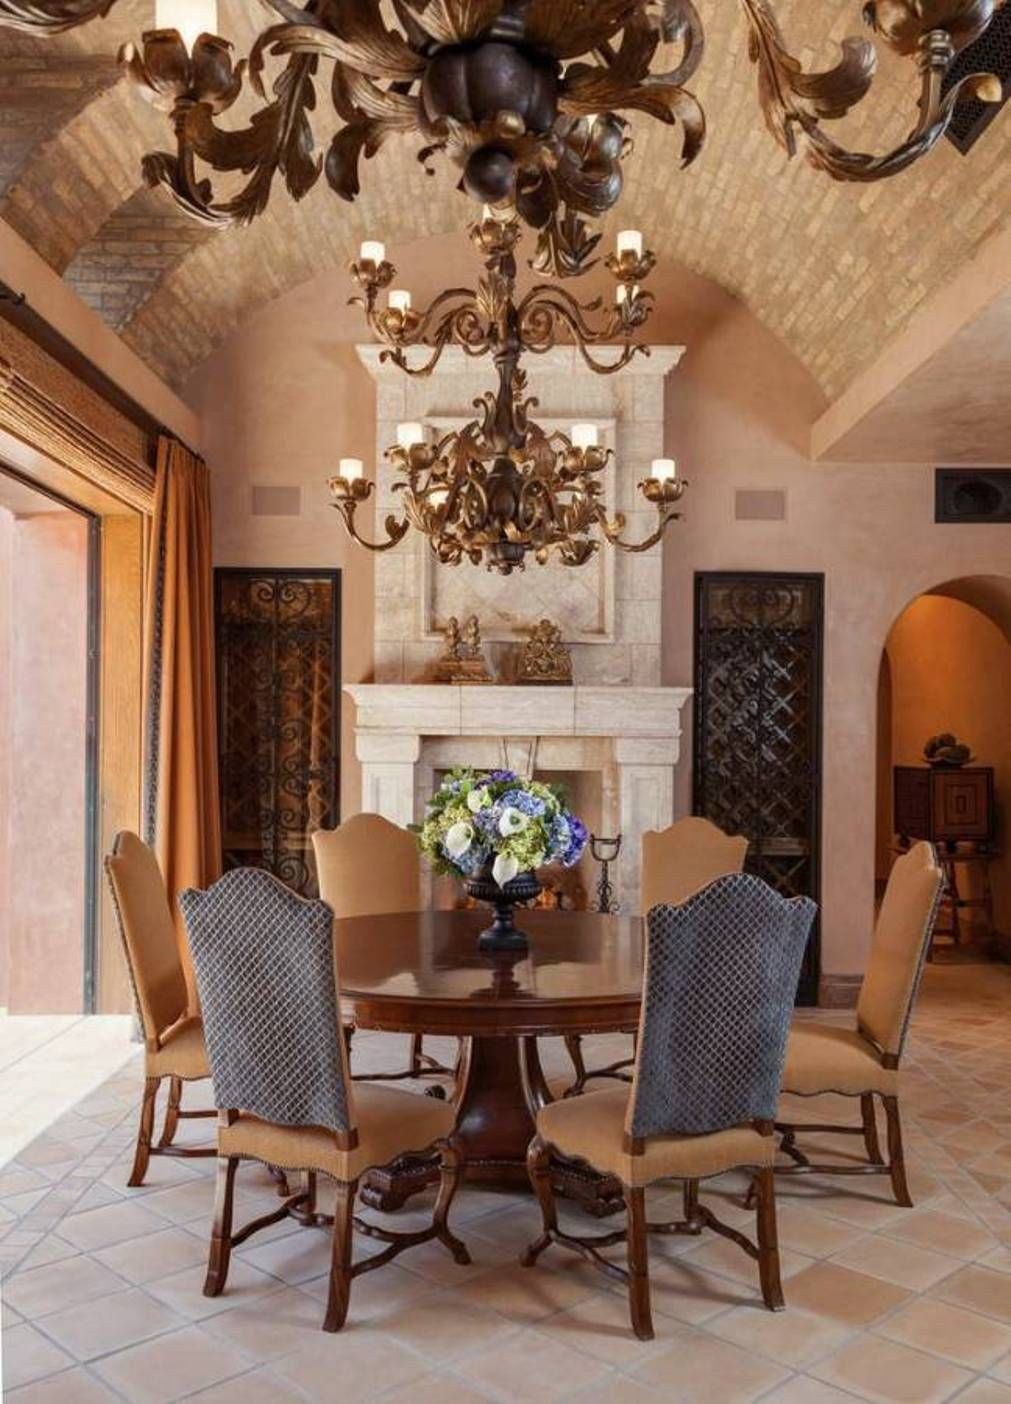 Dining Room Inviting Tuscan Style With Double Chandeliers